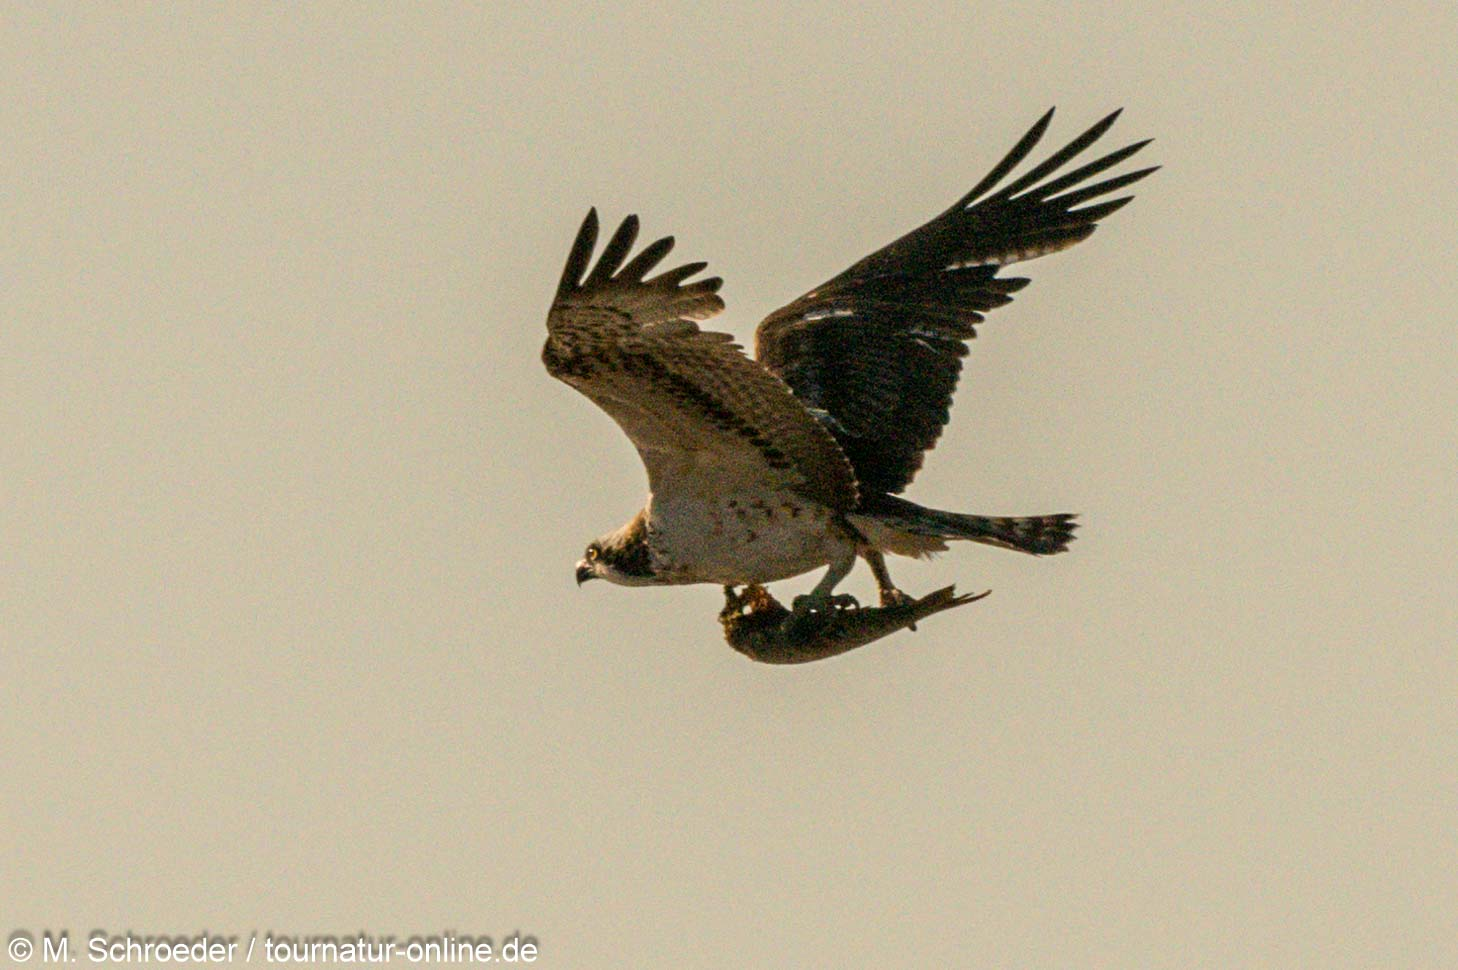 Fischadler - osprey (Pandion haliaetus)